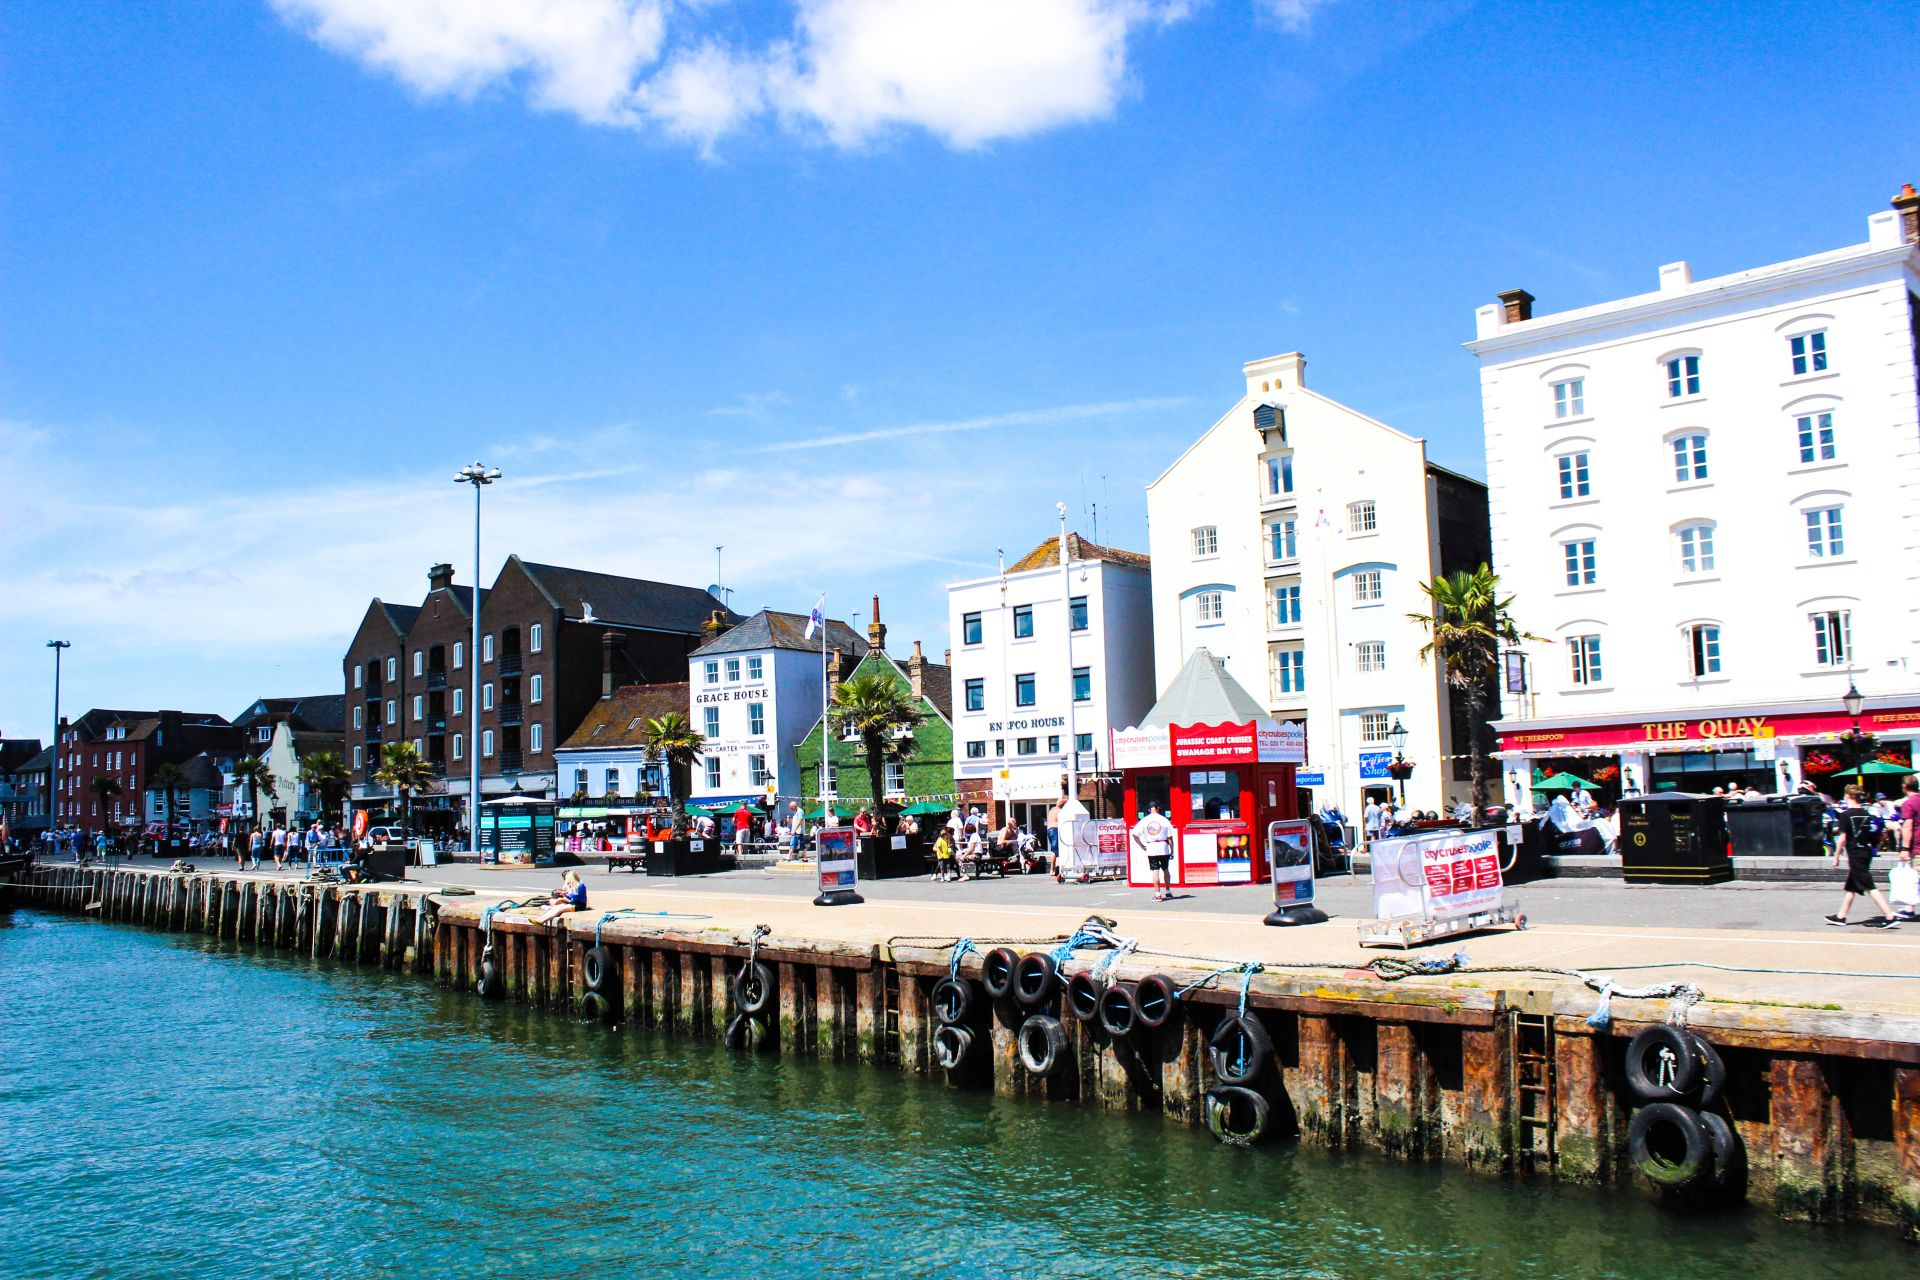 7 reasons to visit Poole this summer